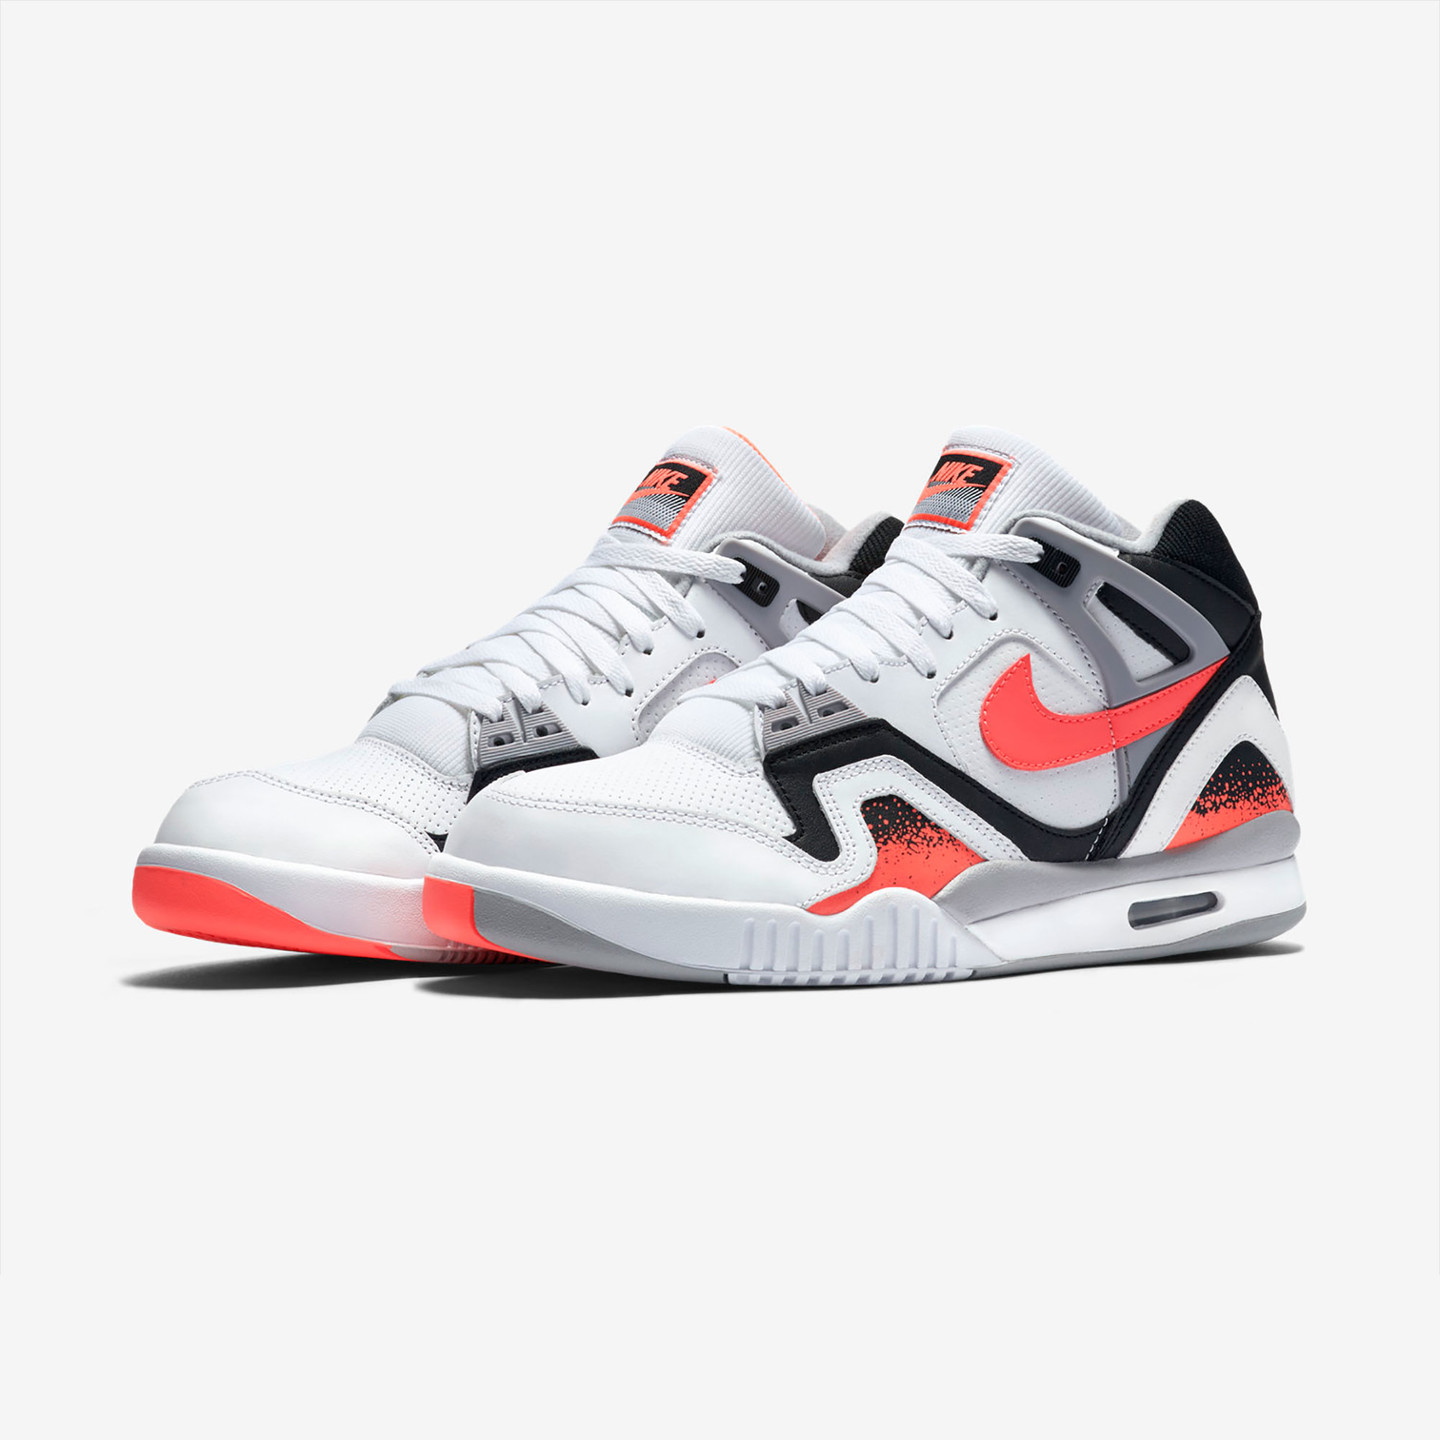 Nike Air Tech Challenge II White / Hot Lava 318408-104-45.5